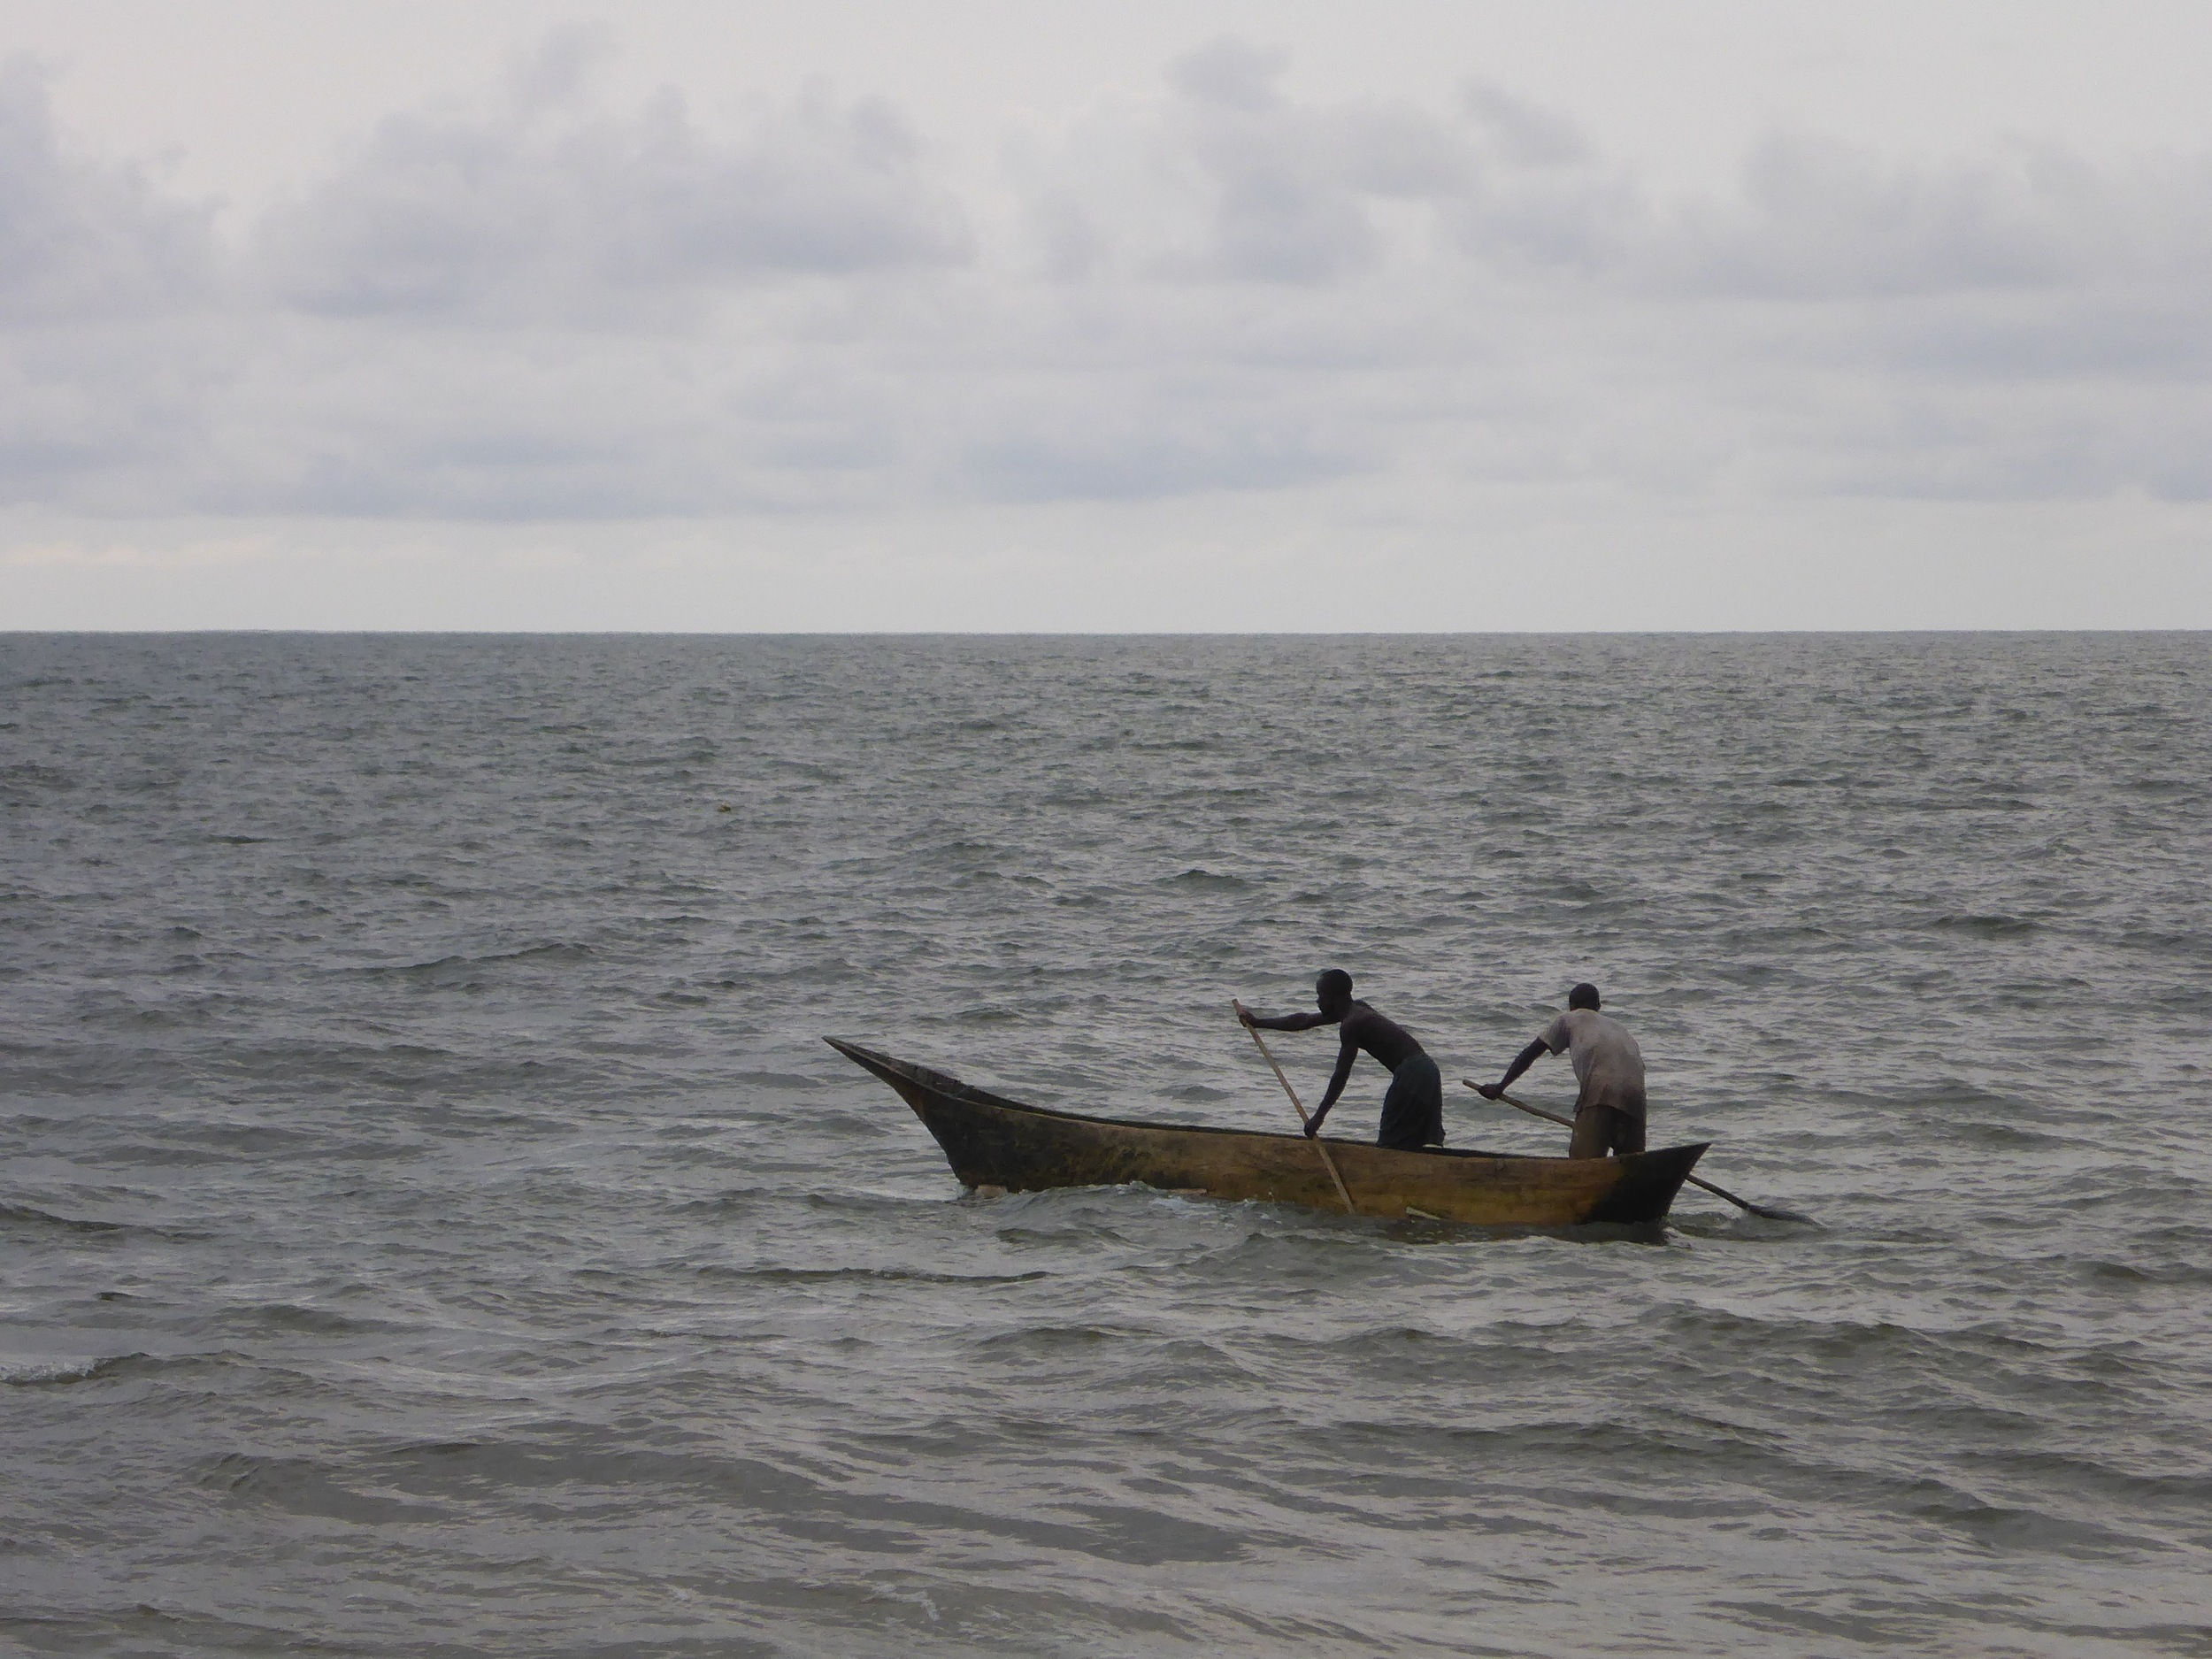 Typical small-scale fishing boat (pirogue) employed by fishers in Conkouati-Douli National Park in the Republic of Congo. Photo: Kristian Metcalfe